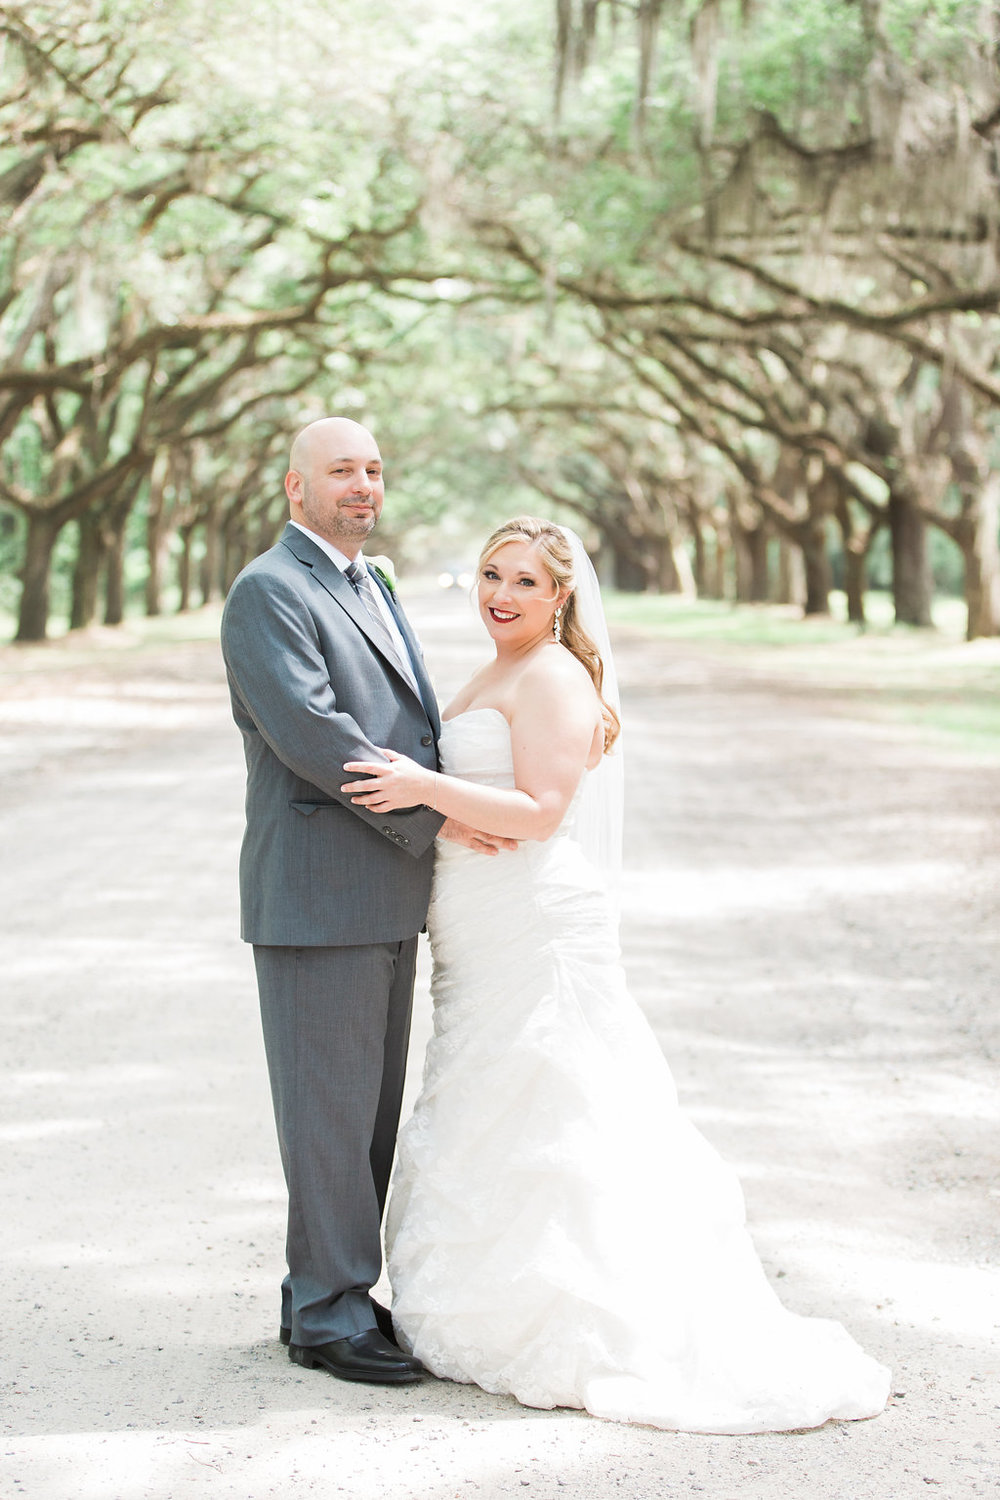 kristin-and-darren-wedding-soho-south-cafe-wormsloe-apt-b-photography-savannah-wedding-planner-savannah-weddings-southern-weddings-best-savannah-wedding-planner-9.JPG